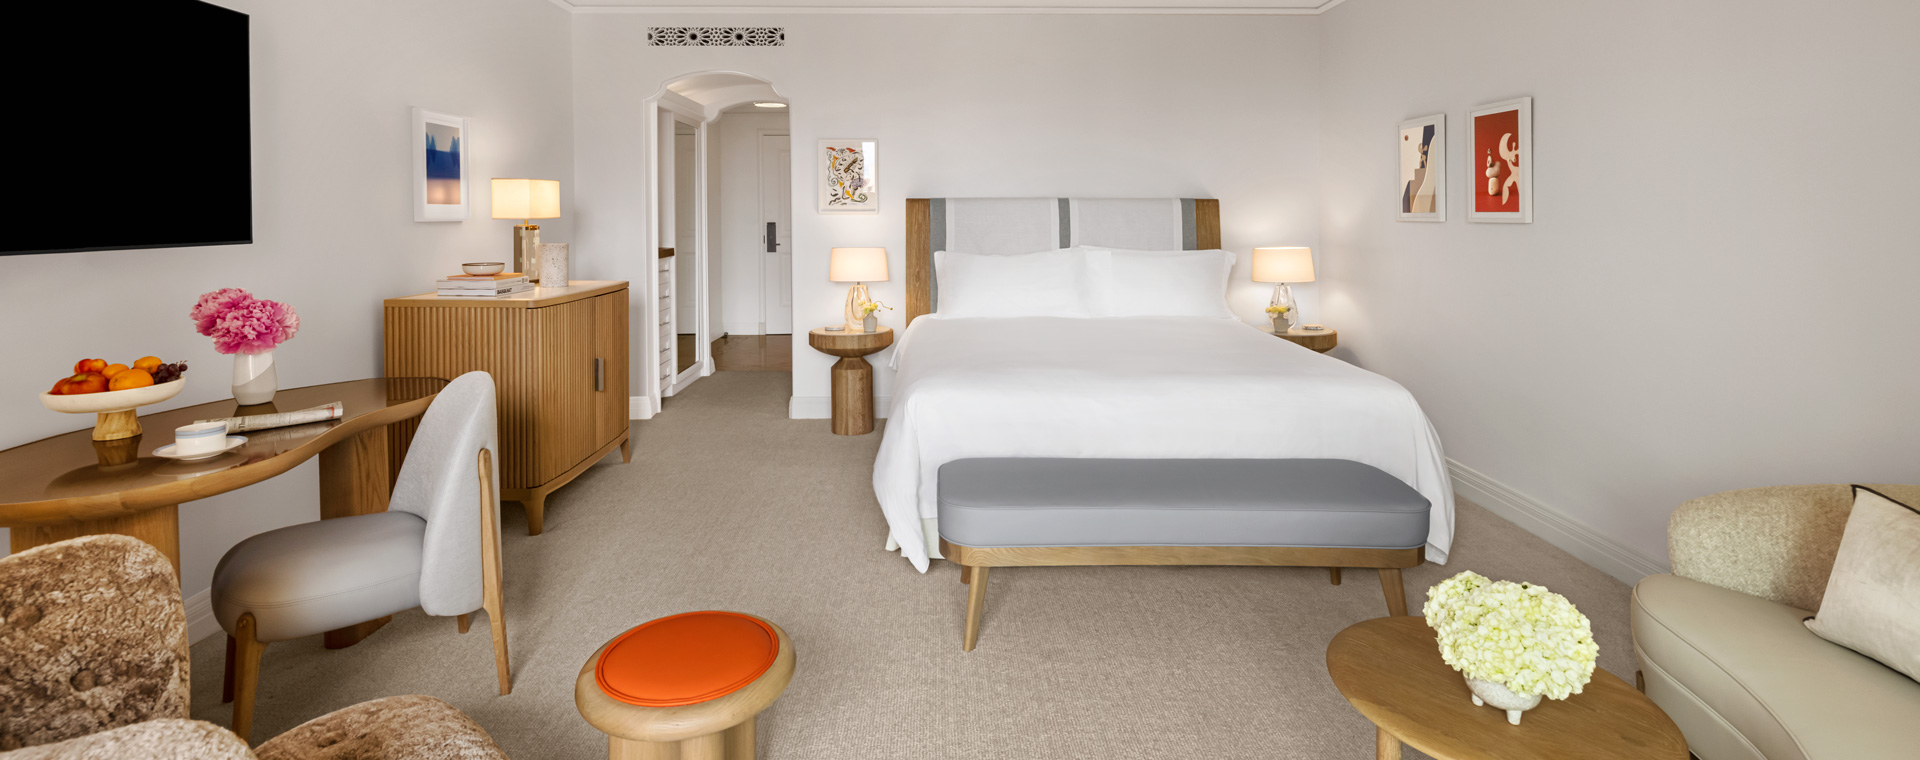 King size bed with orange stool, a television and pink fresh flowers in Maybourne Balcony Room